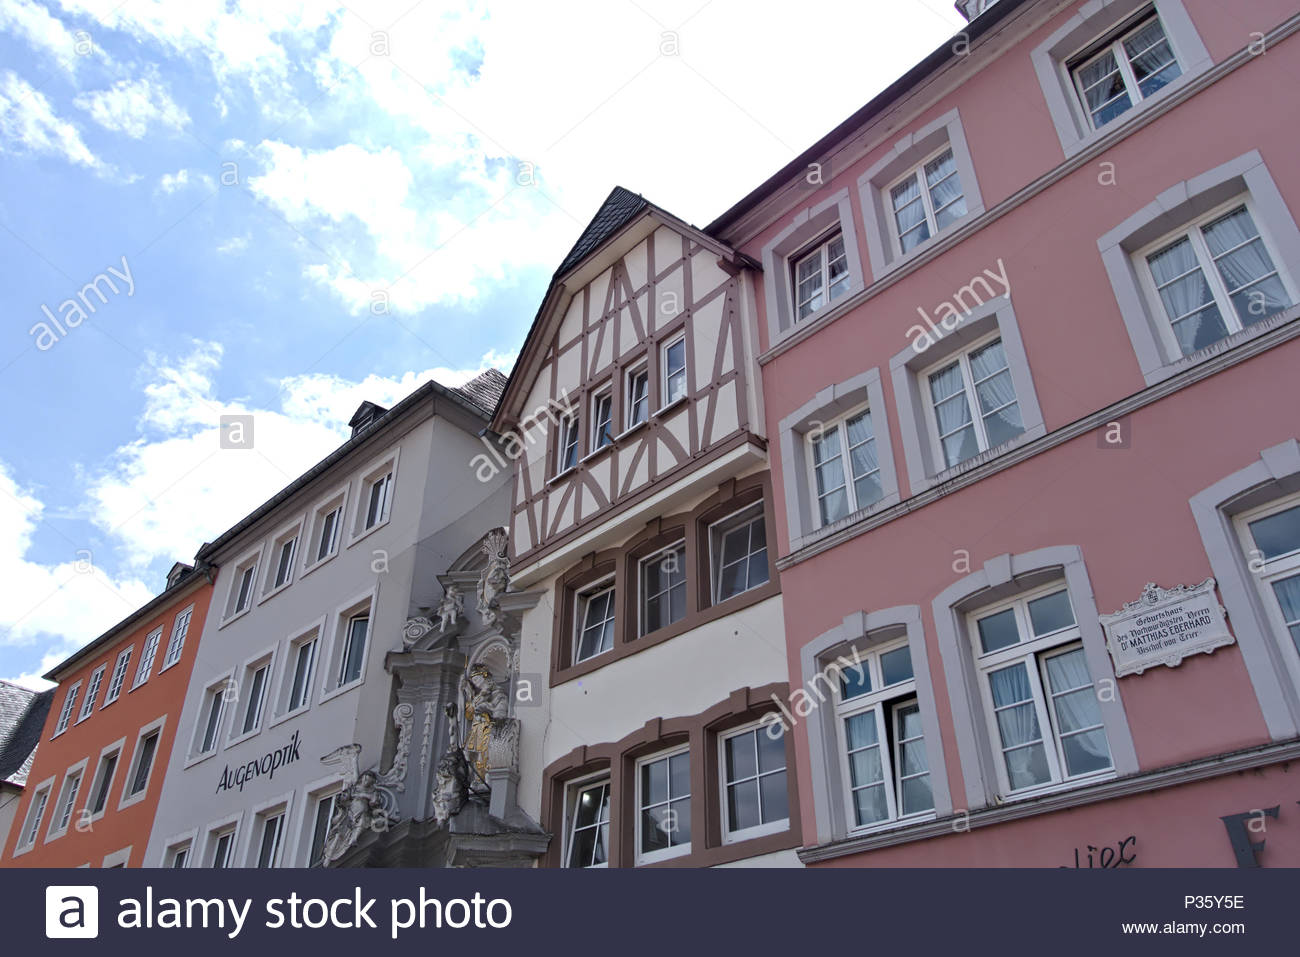 The beautiful main market of Trier, Germany. The market with houses of the Renaissance, Baroque, Classicism and Late Historicism. - Stock Image